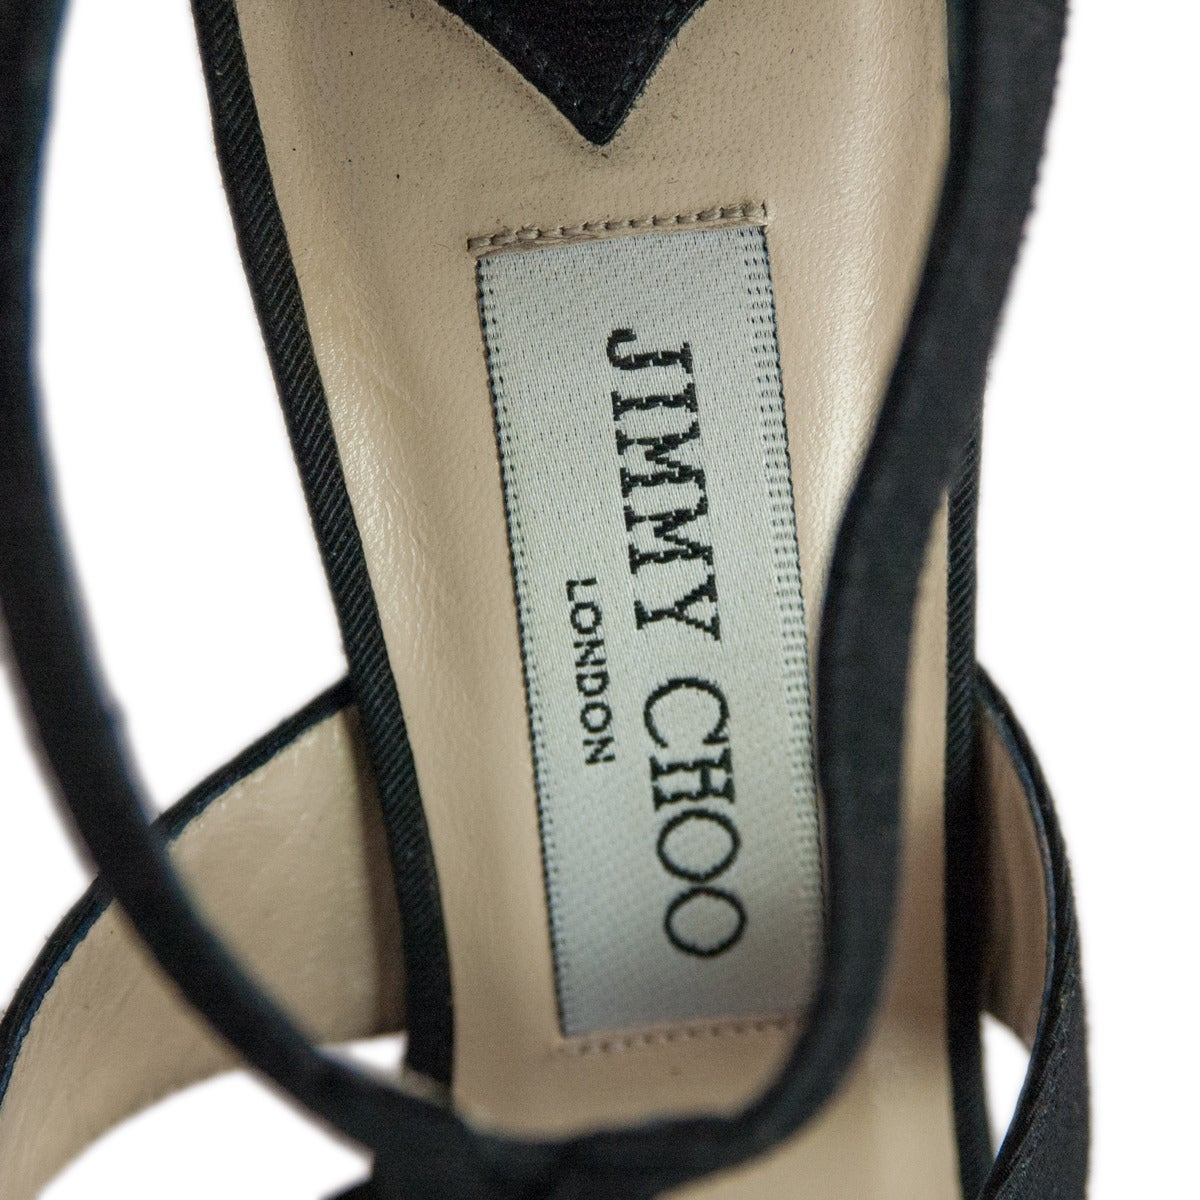 Jimmy Choo Black Satin Sandal 4